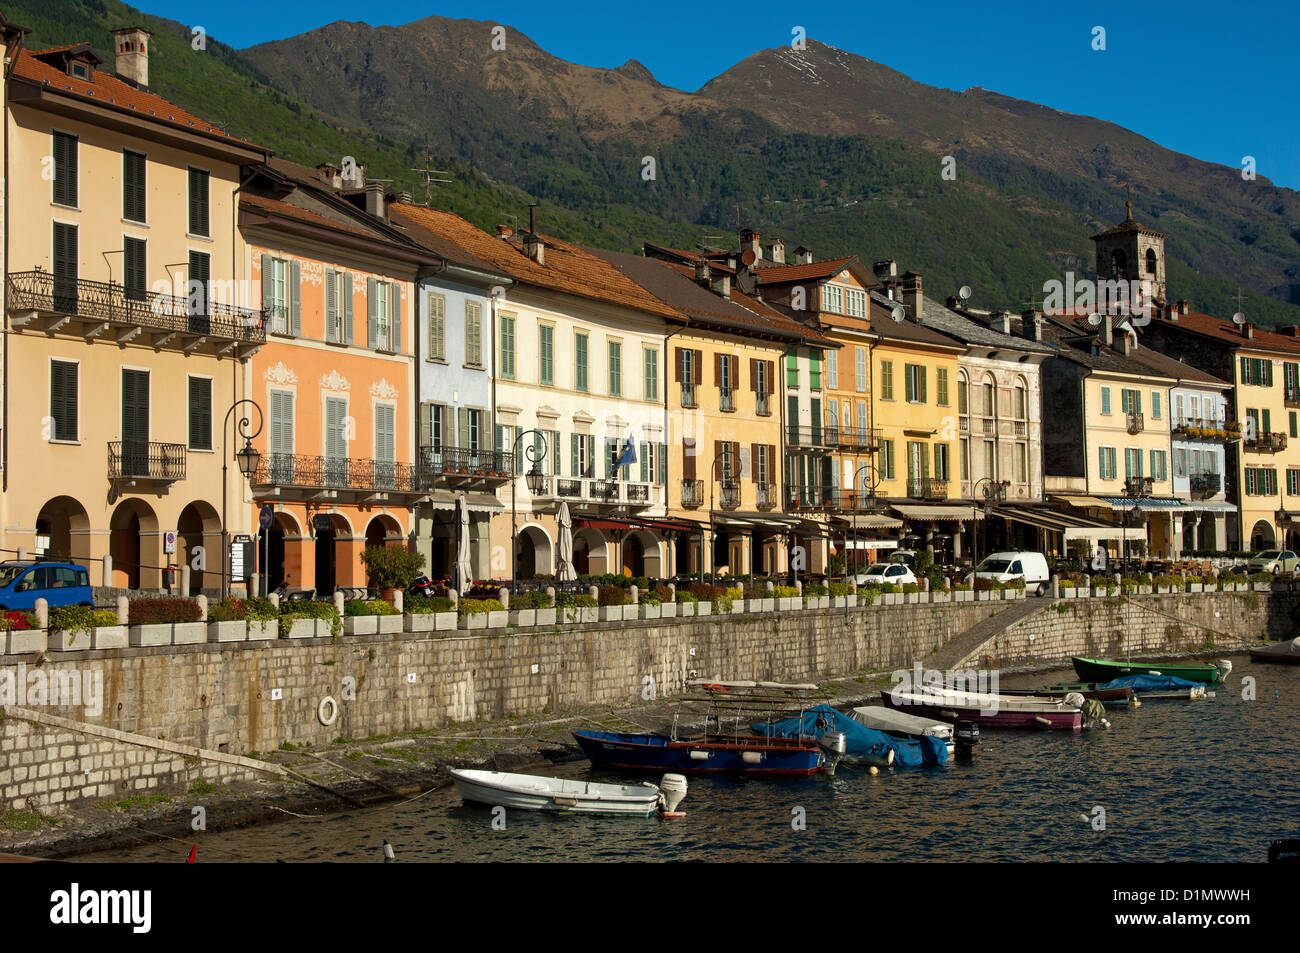 Lakefront in Cannobio at the shore of the Lago Maggiore, Piedmont, Italy - Stock Image